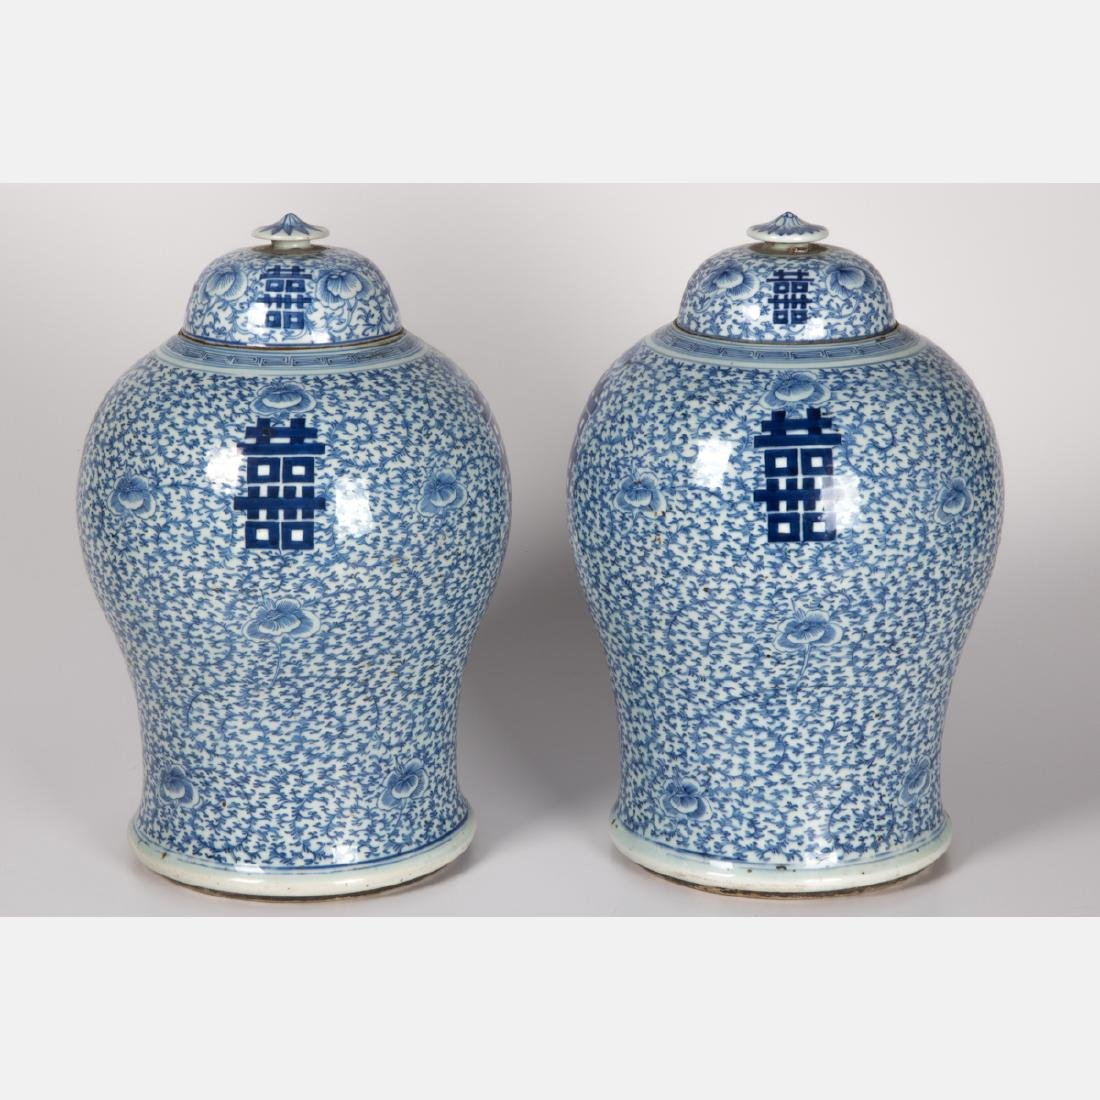 A Pair of Chinese Blue and White Porcelain Lidded Jars,